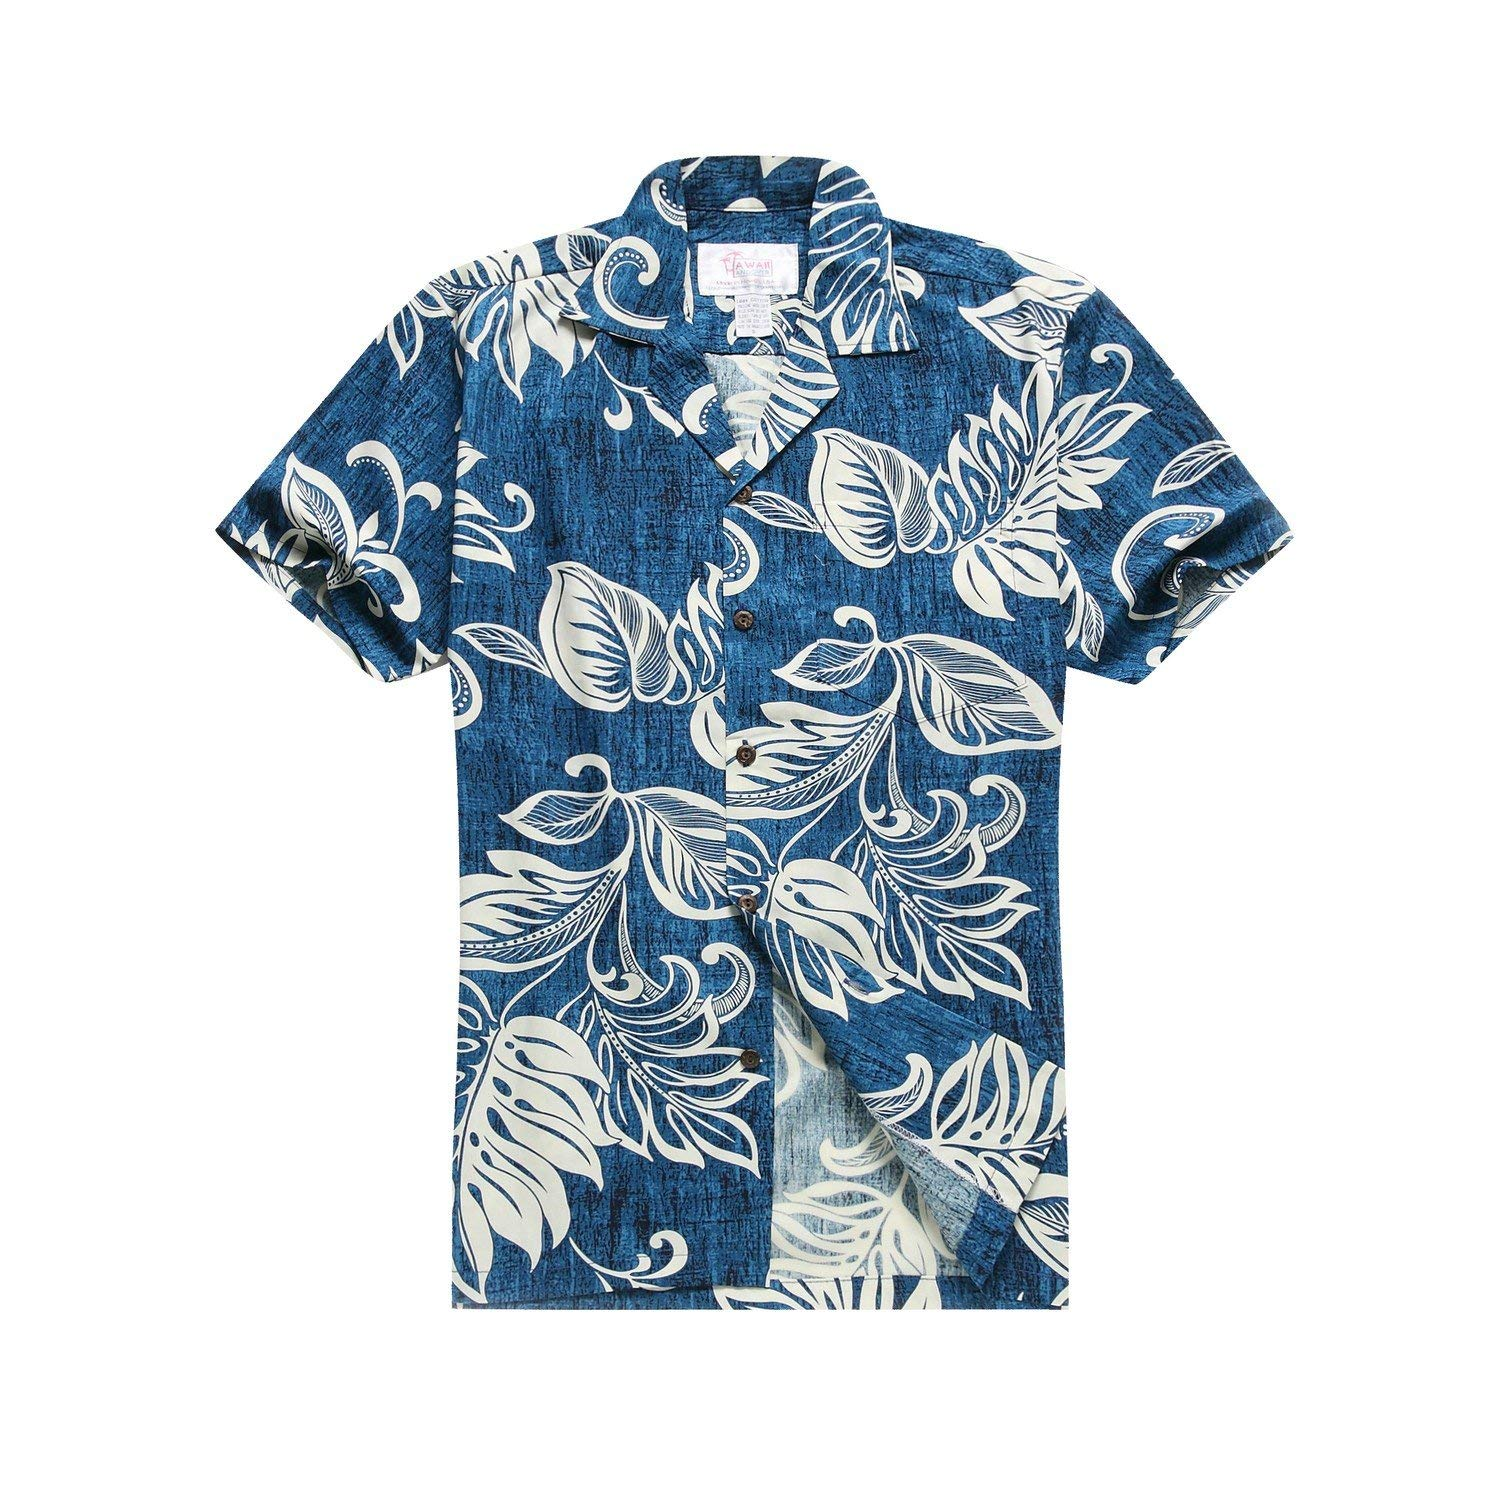 58e16977 Get Quotations · Made In Hawaii Men's Hawaiian Shirt Aloha Shirt In Vintage  Leaves In Royal Blue